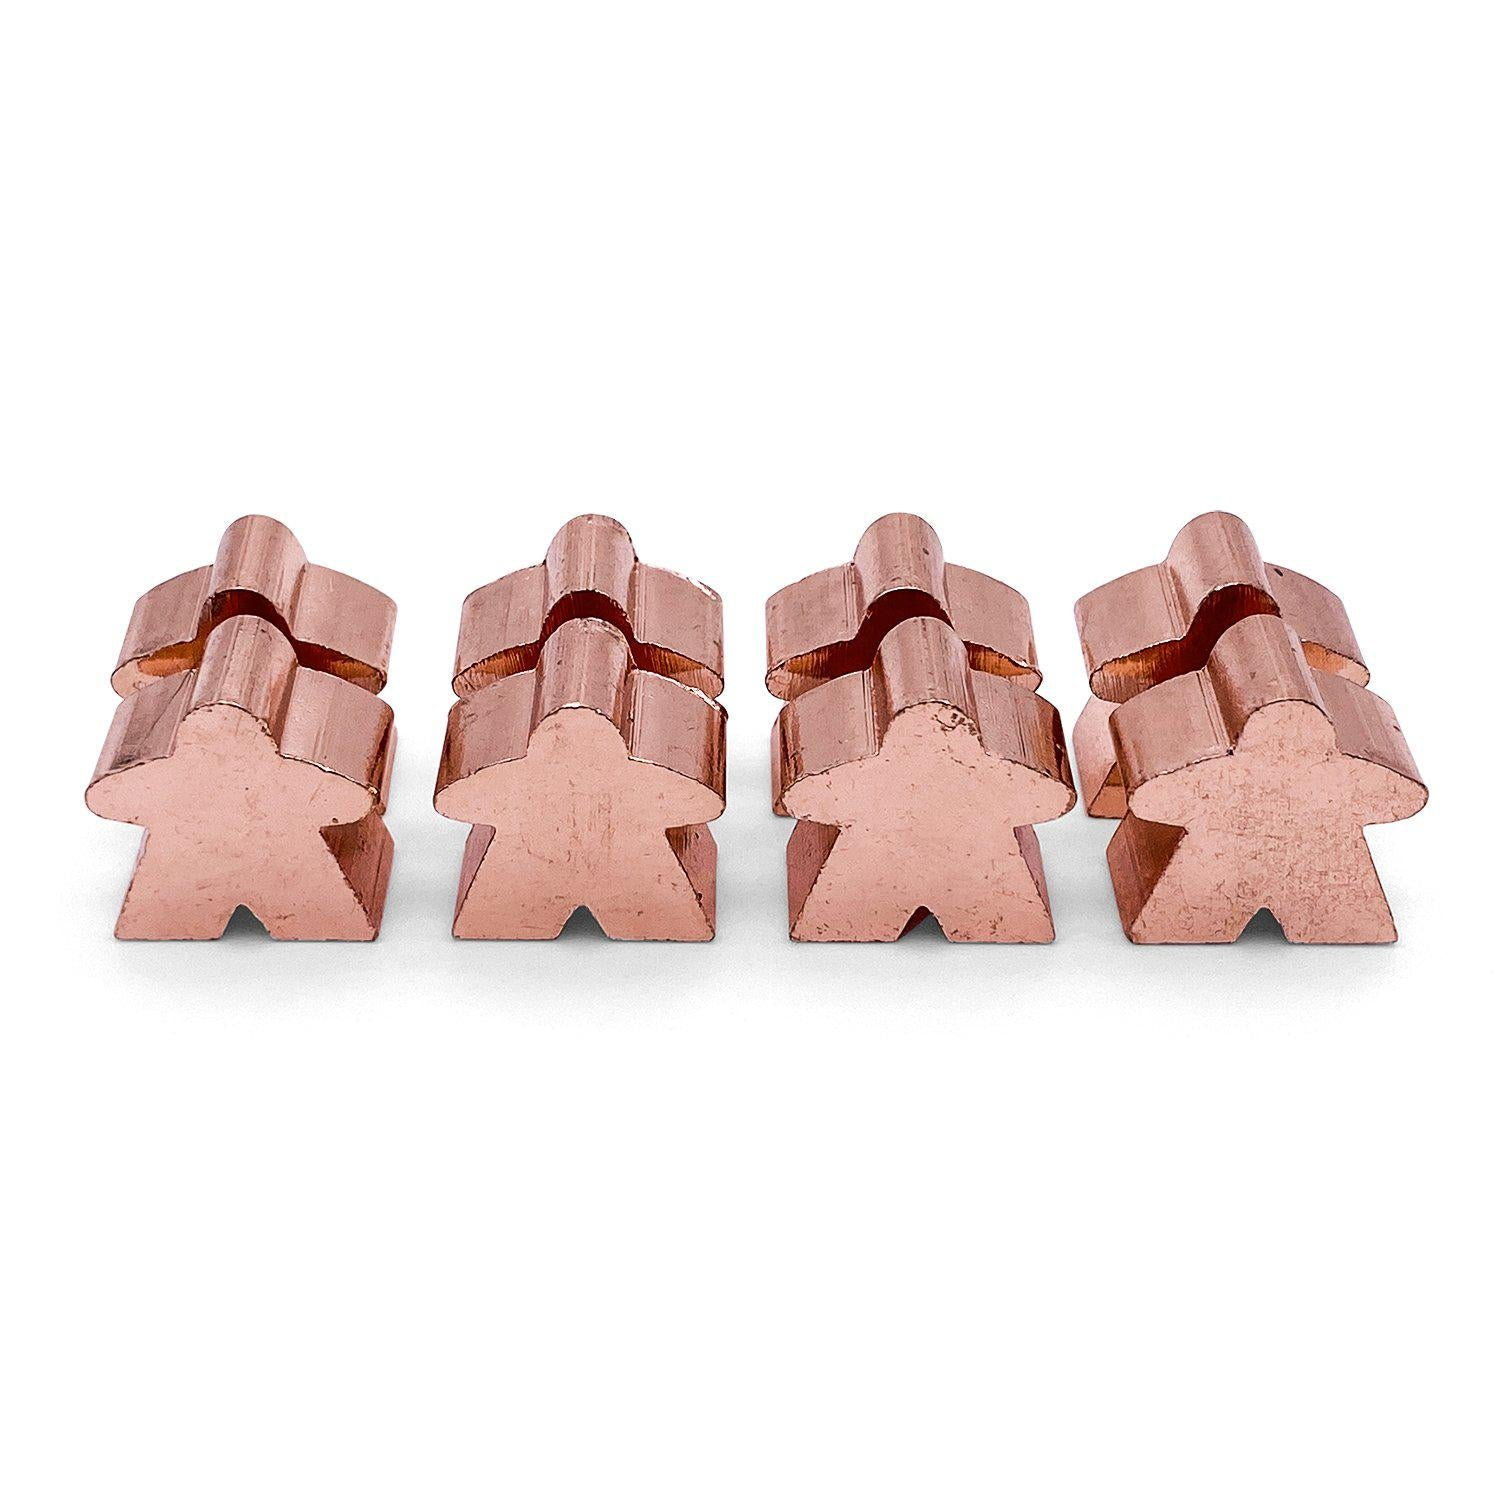 8 Pack of Shiny Copper Metal Meeples by Norse Foundry